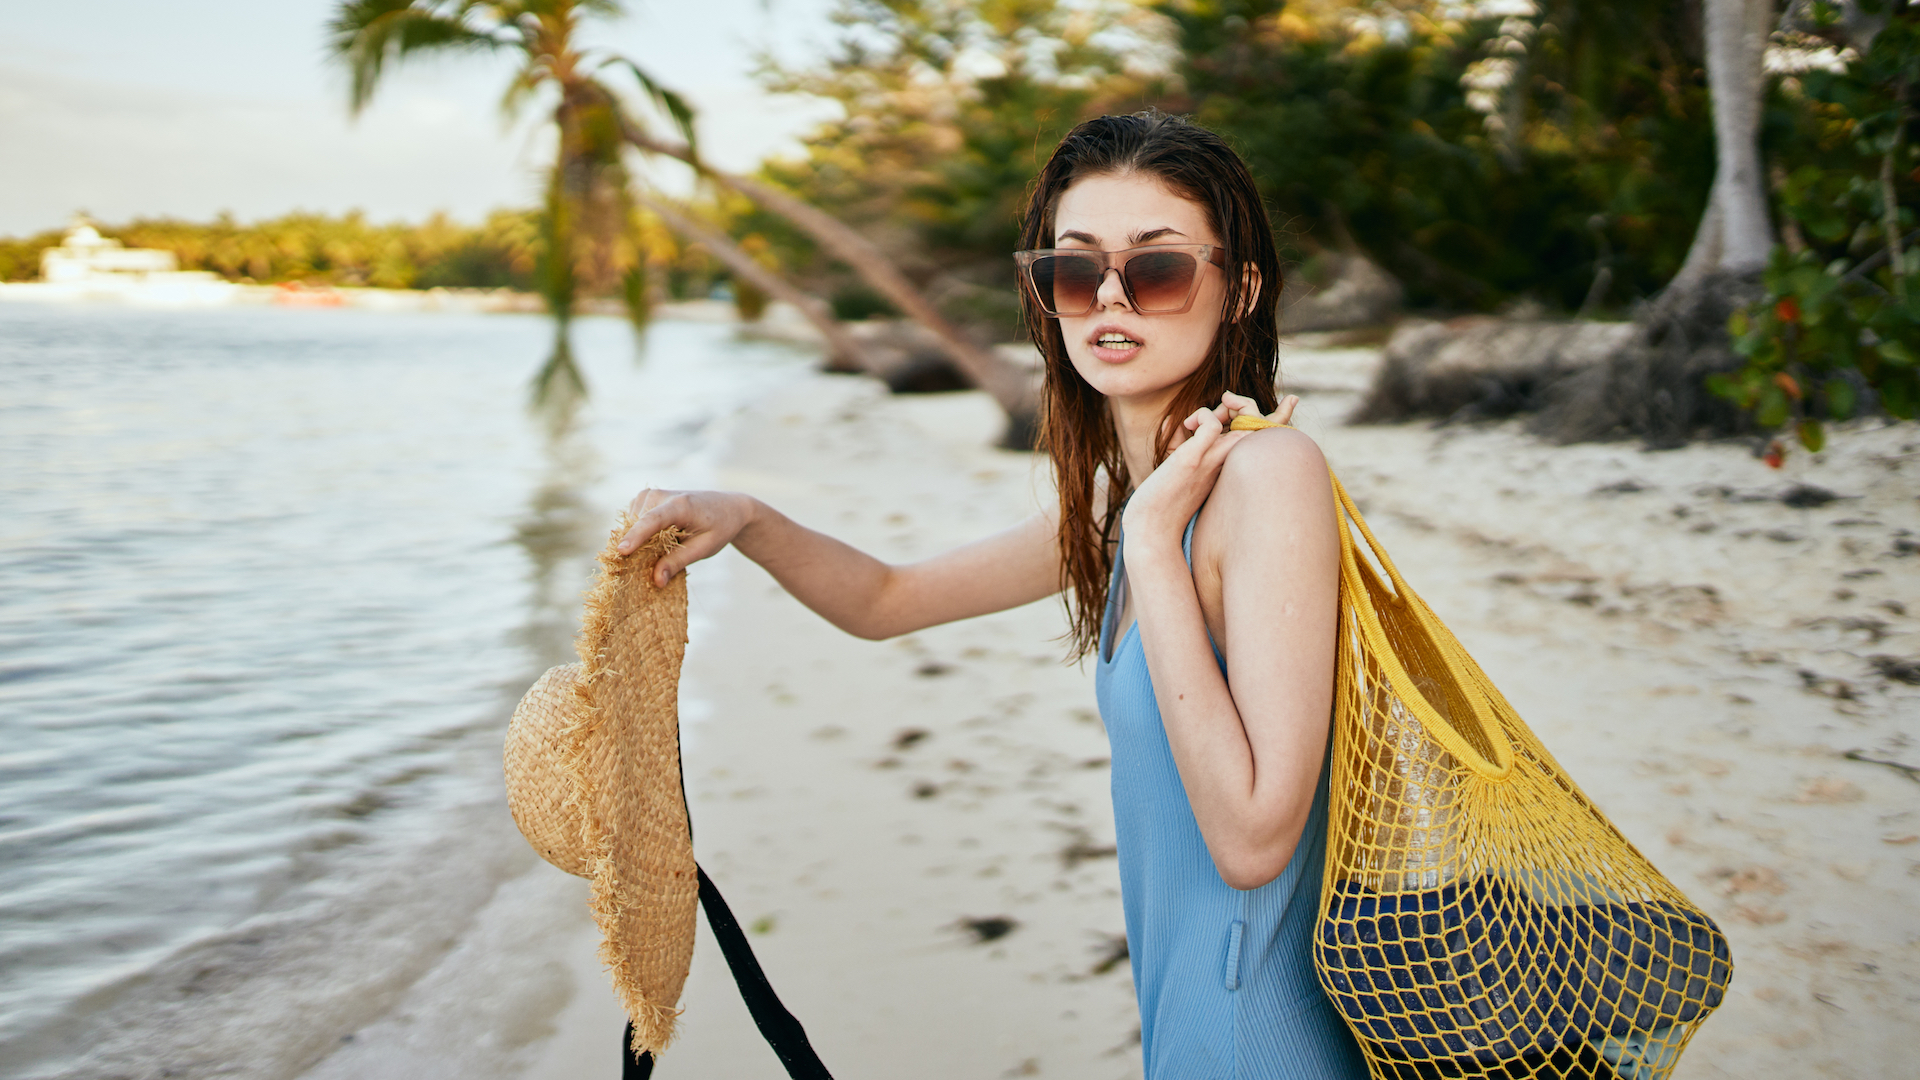 Vacation-Ready Bags You Can Score at Macy's for Under $100 Right Now